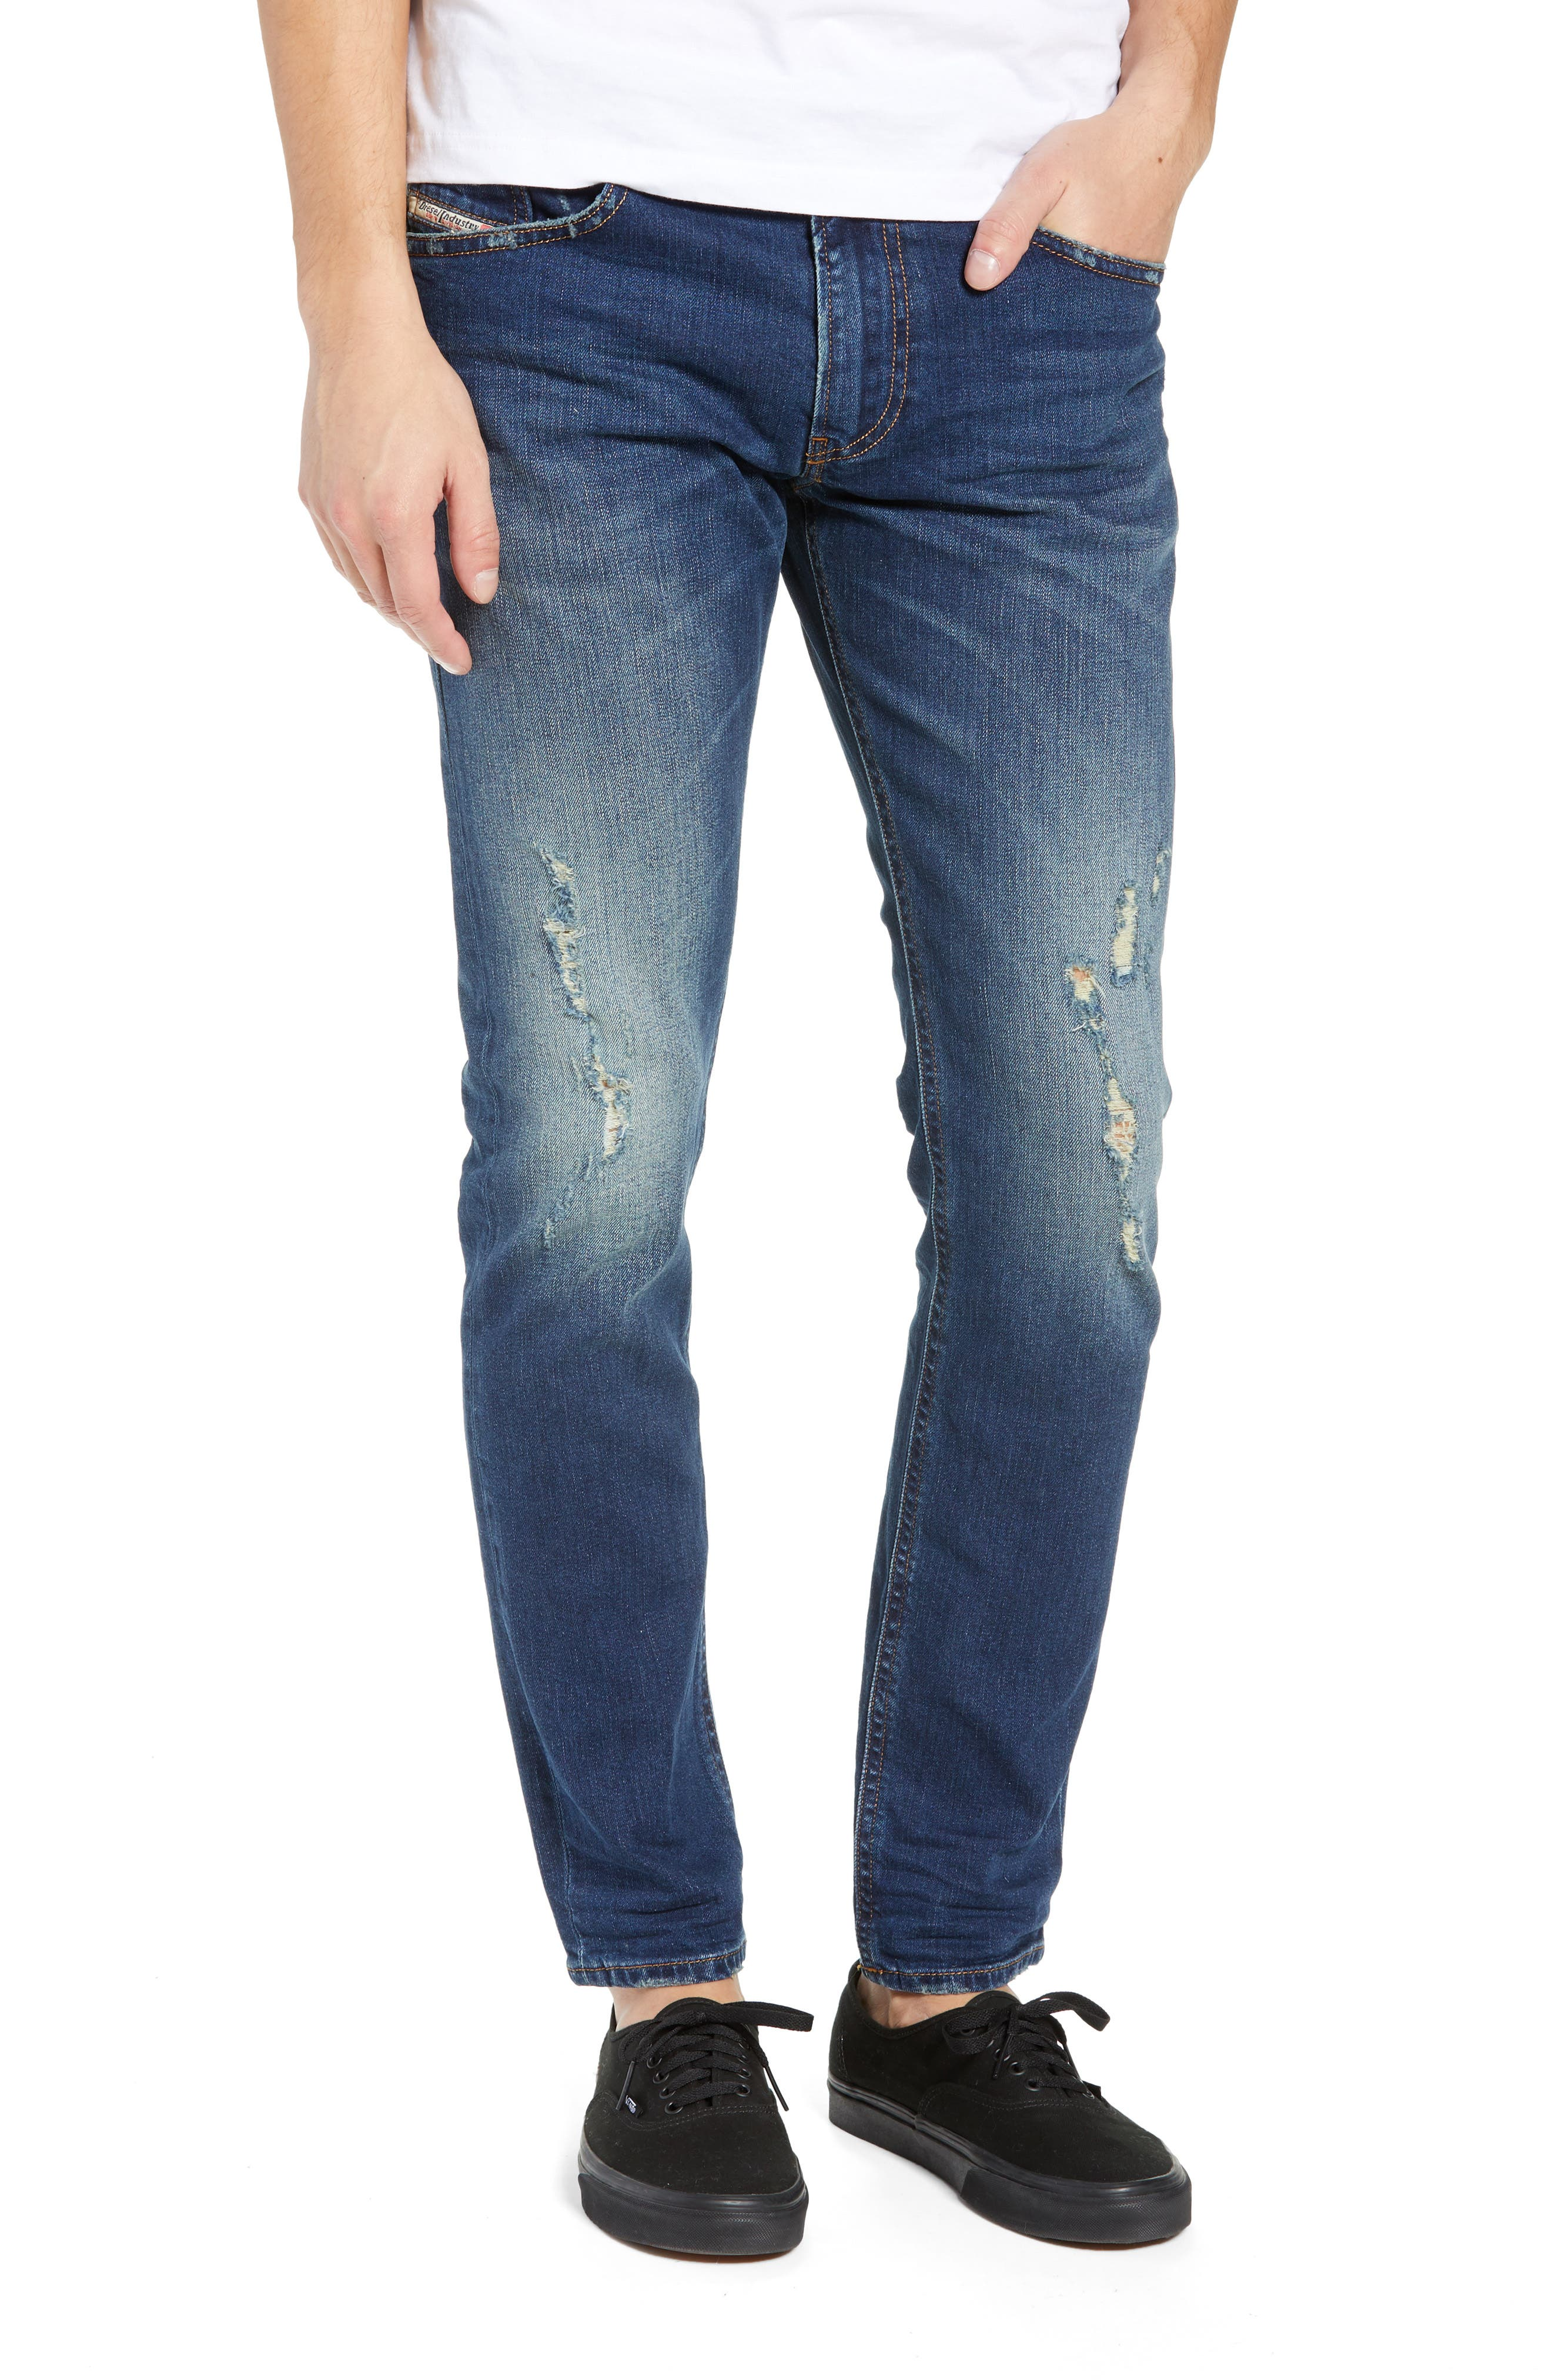 Thommer Slim Fit Jeans,                             Main thumbnail 1, color,                             084YY